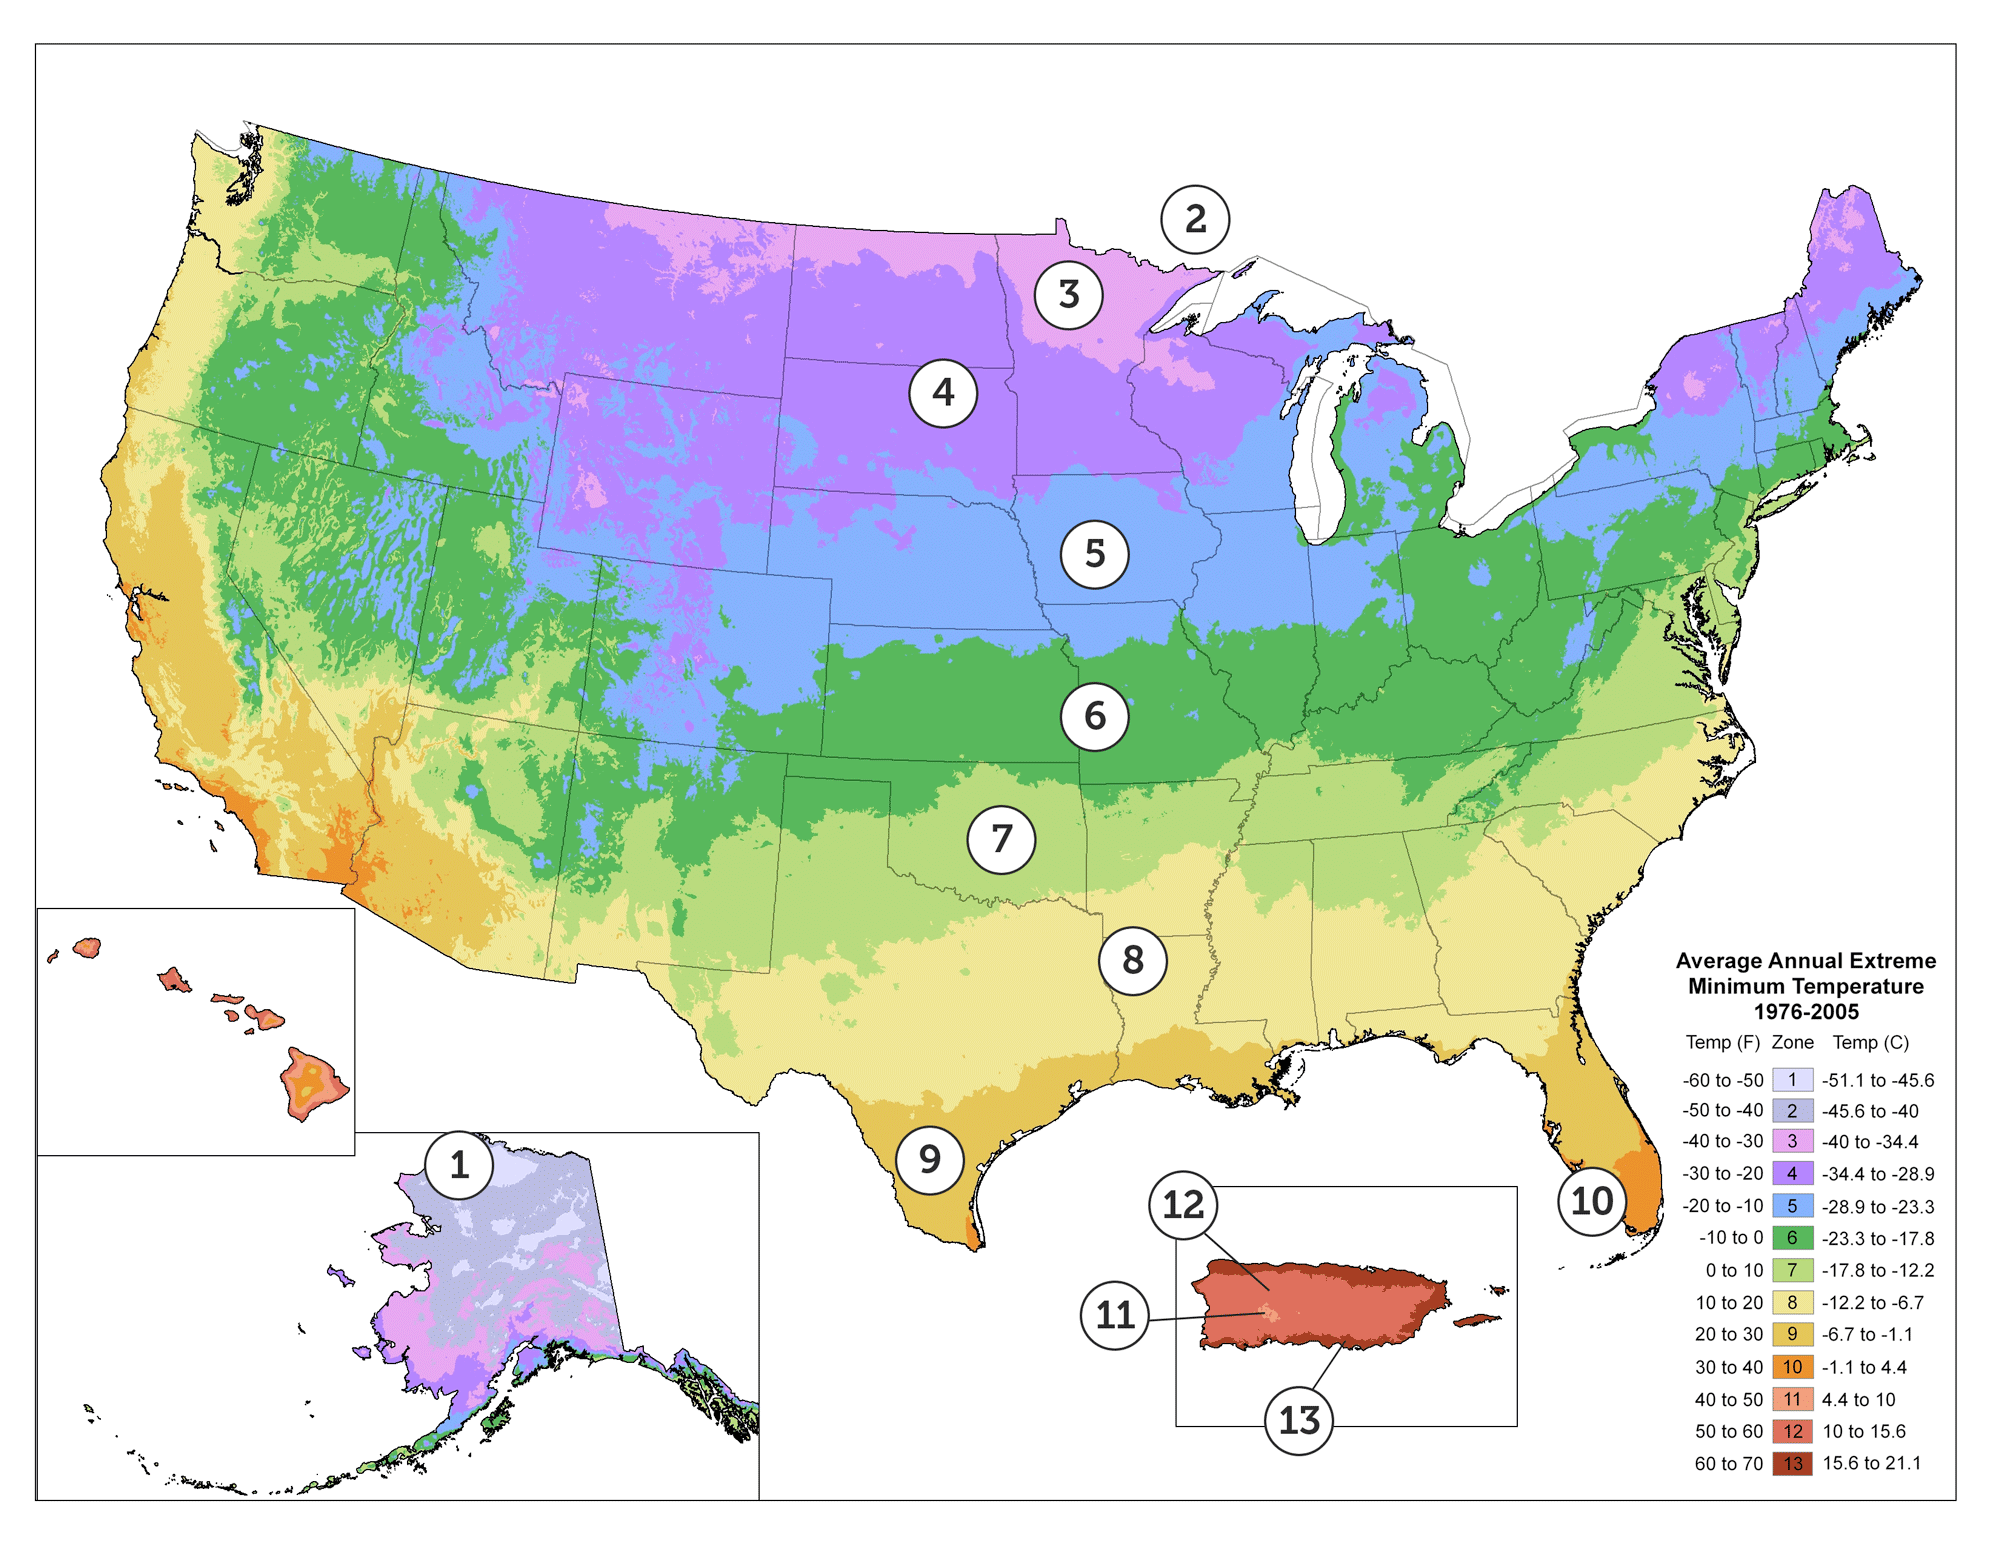 The Map Is Based On The Average Annual Minimum Winter Temperature Divided Into 10 Degree F Zones